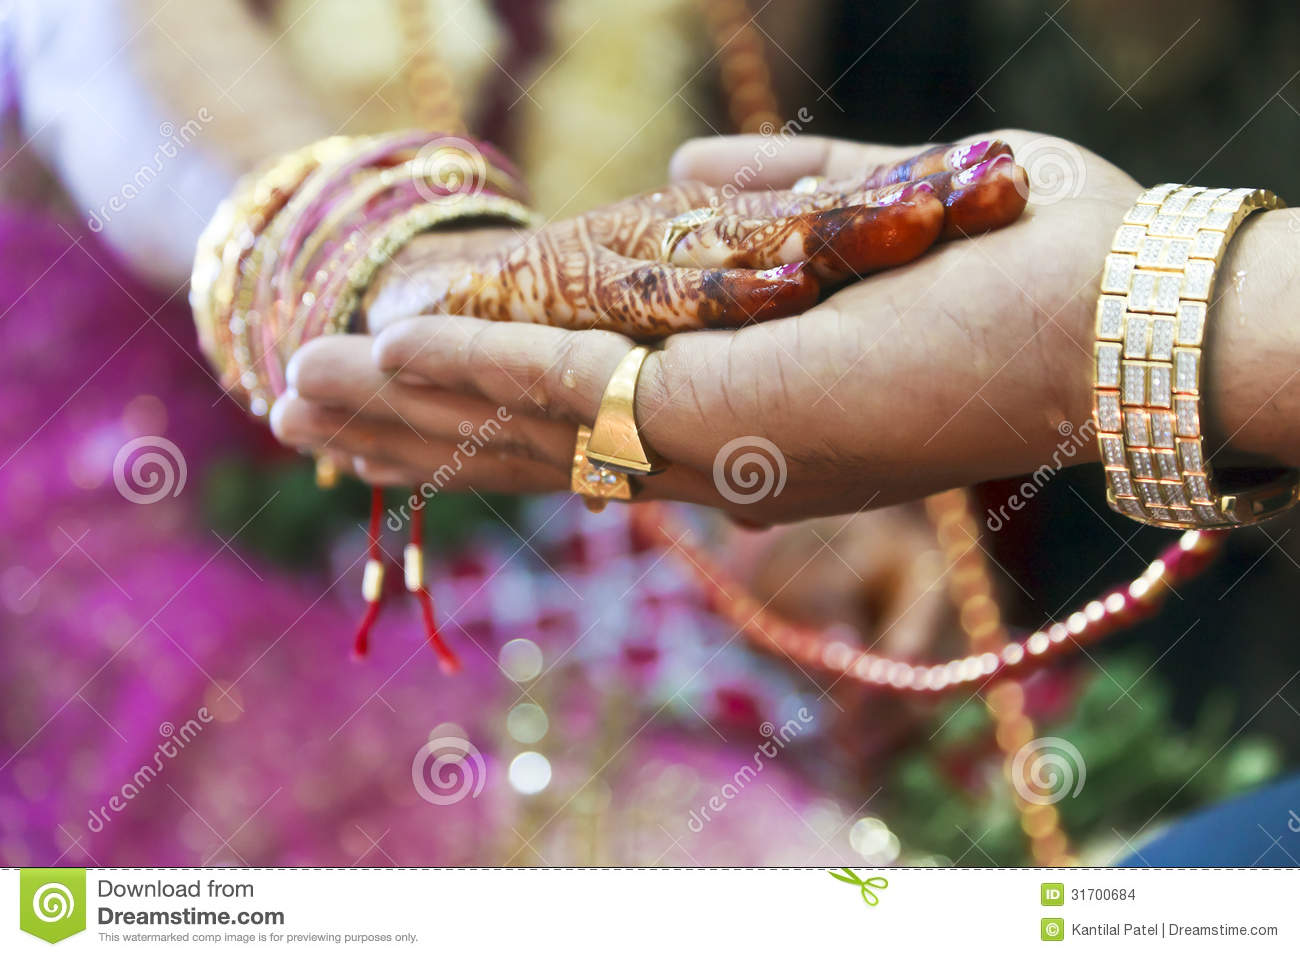 comber hindu dating site Us hindu matrimony is a new and successful matrimonial service that caters to the match-making needs of the thriving indian-american youth.